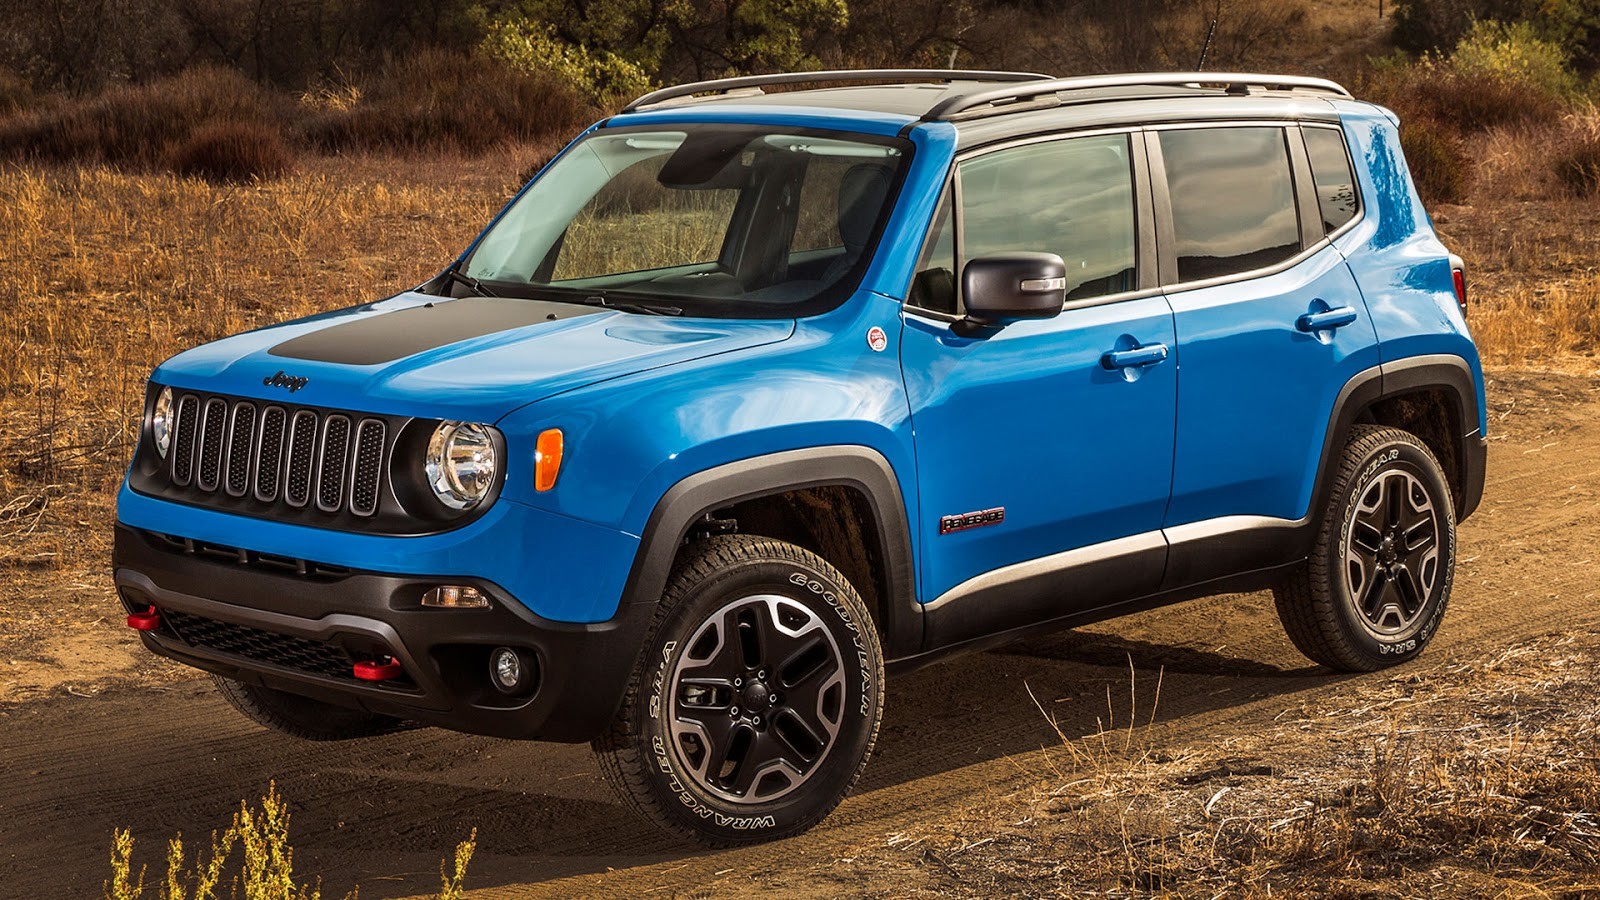 top 50 jeep renegade 4x4 suv pictures gallery types cars. Black Bedroom Furniture Sets. Home Design Ideas